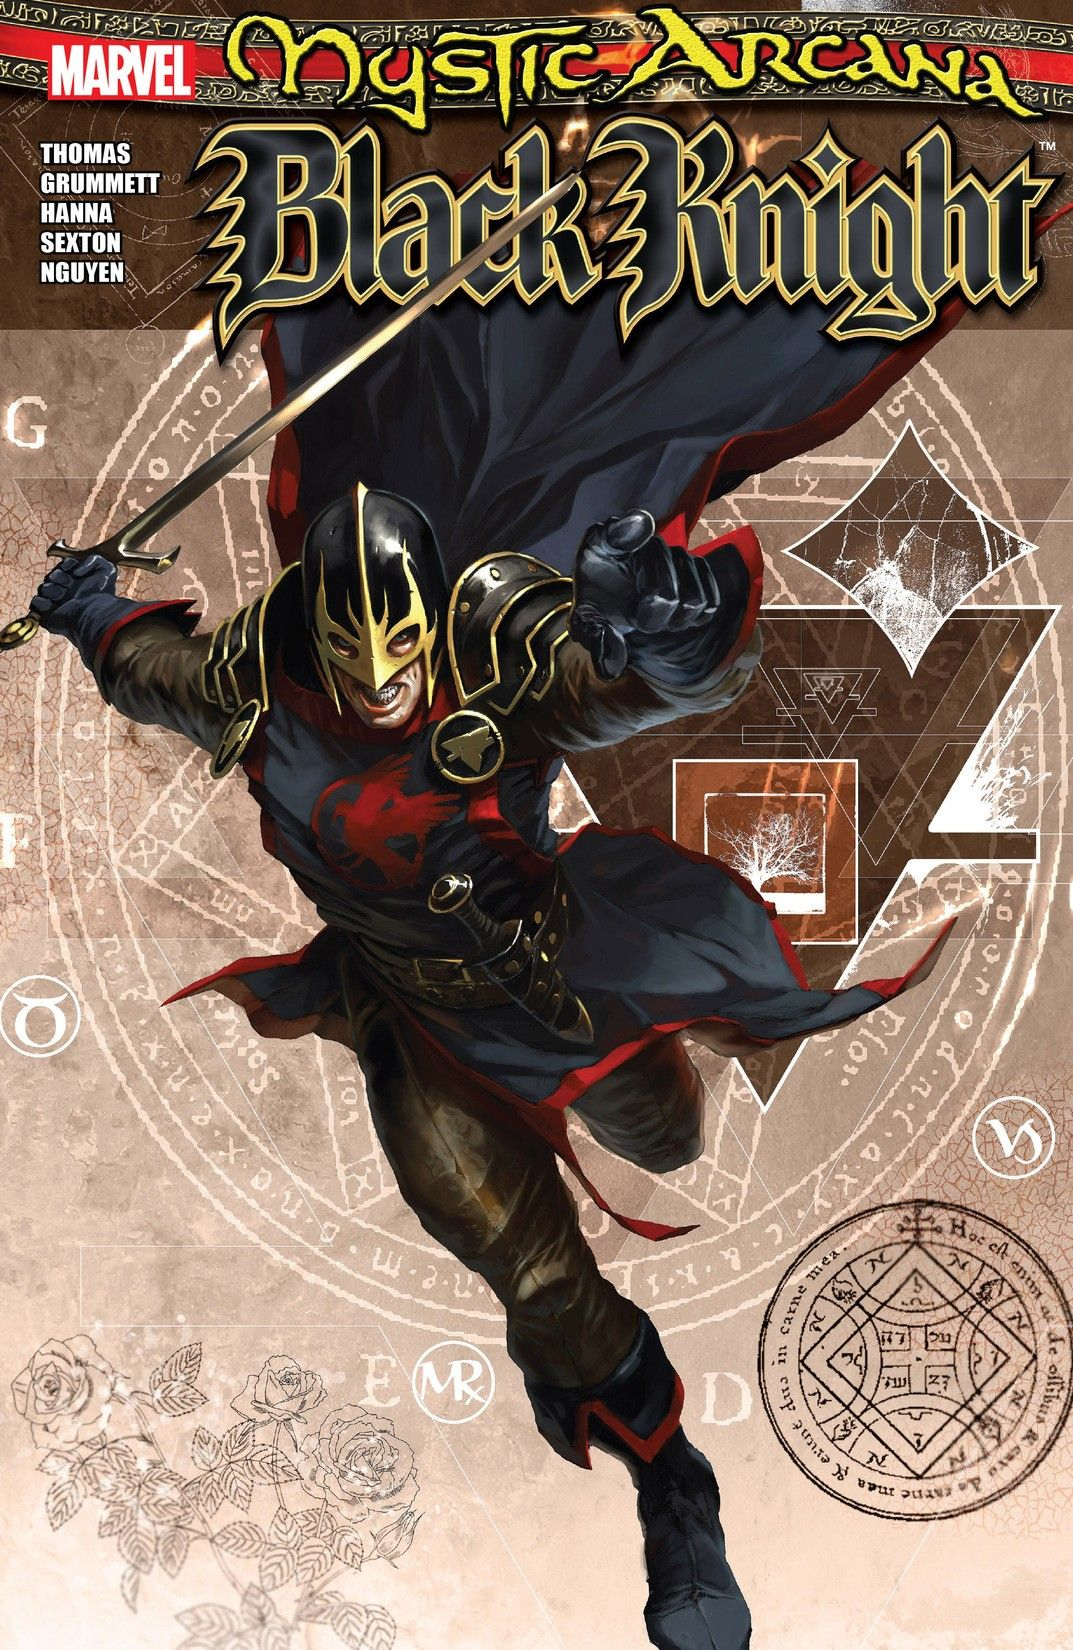 Mystic Arcana: Black Knight #1, Magik #1, Scarlet Witch #1, Sister Grimm #1 (2007-2008) - Comix4Free - Free download Marvel, DC, Image Comics